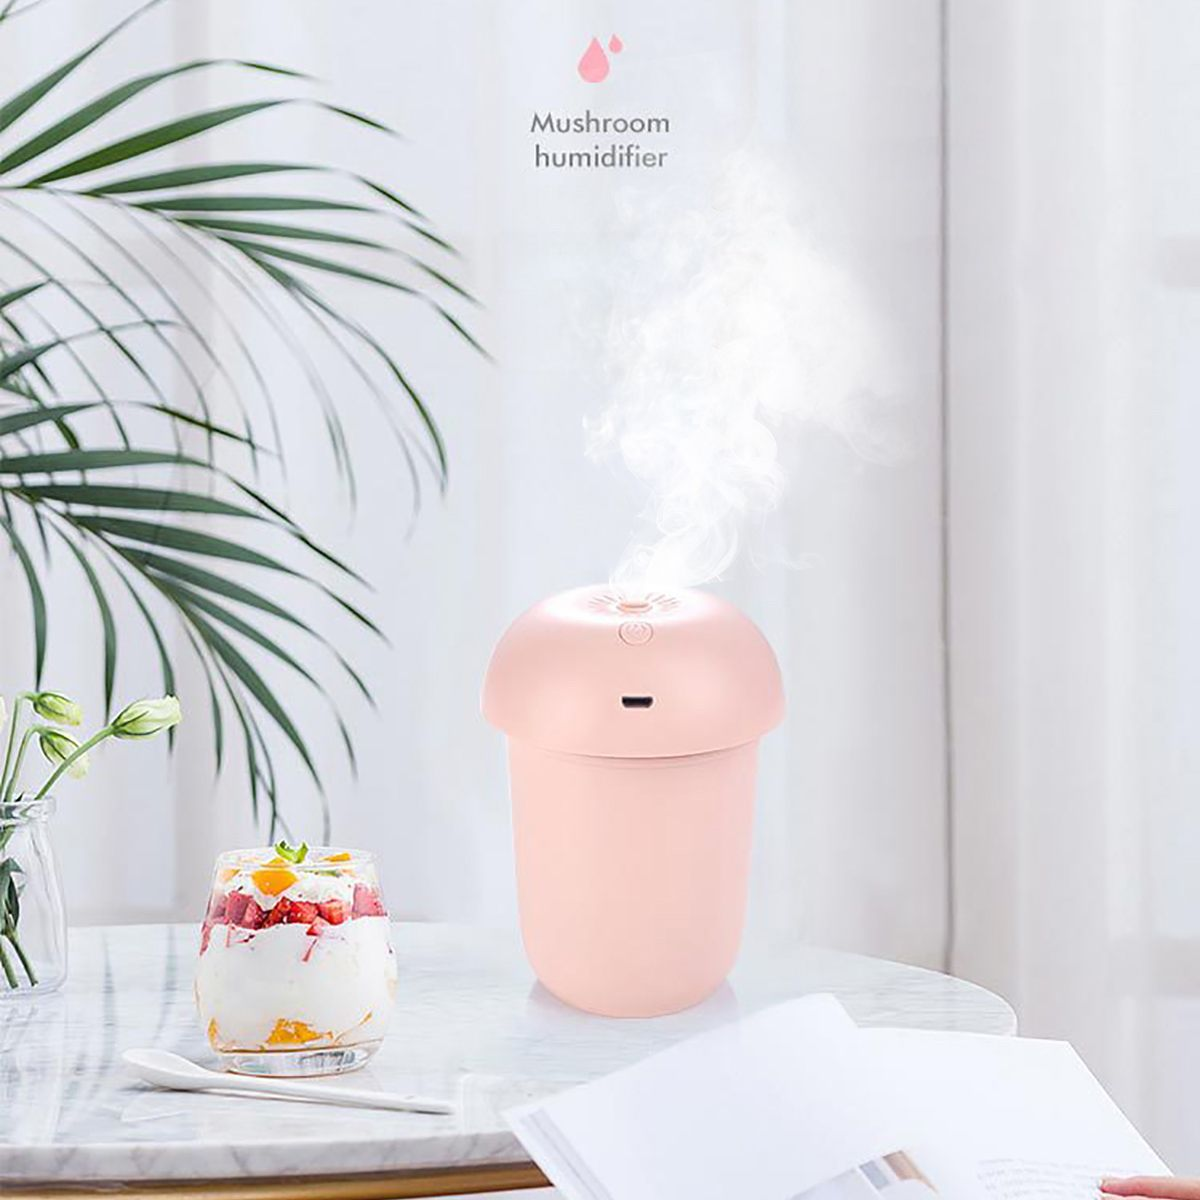 Household Mini Air Humidifier For Home Car USB Bottle Aroma Diffuser LED Backlight Office Mist Maker Refresher Humidification